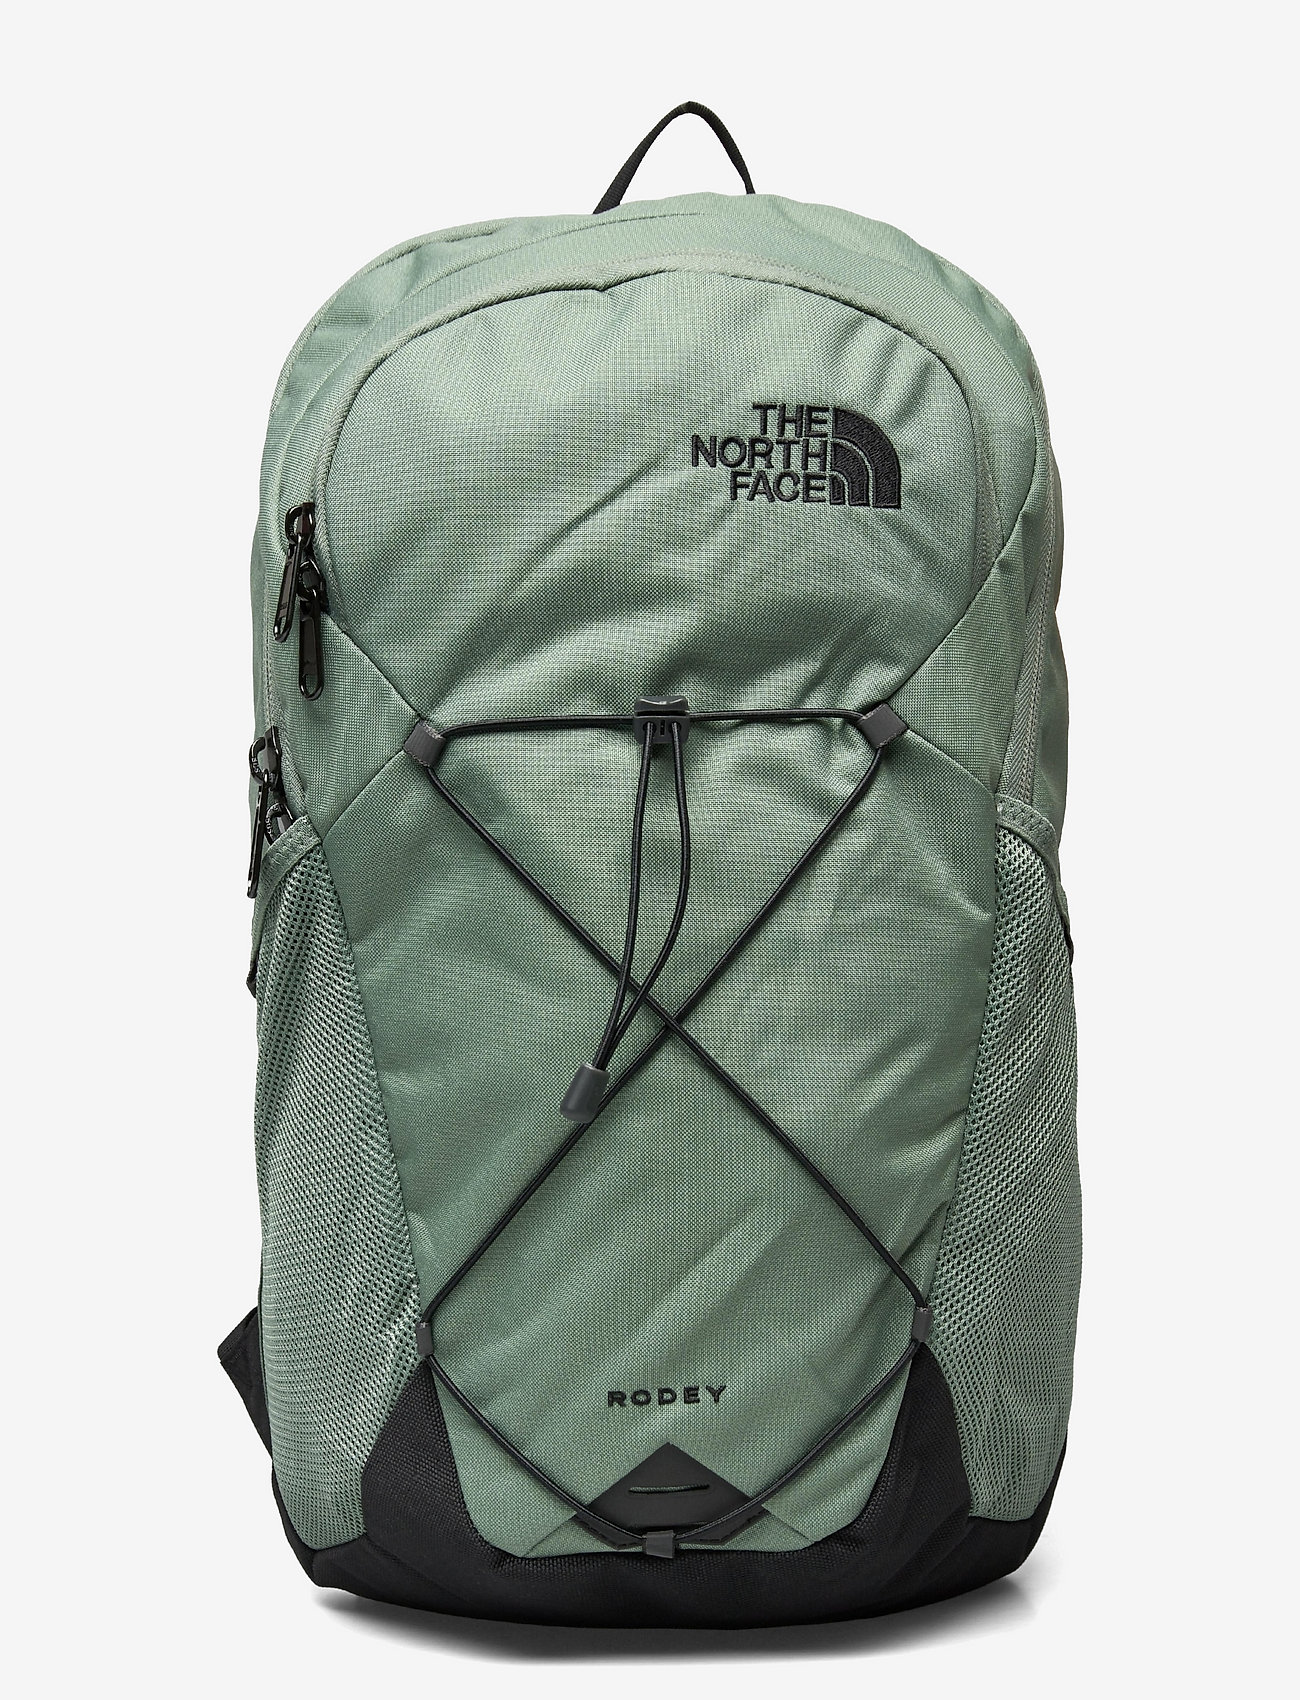 The North Face - RODEY - sacs a dos - lrlwrthgn/tnblk - 0